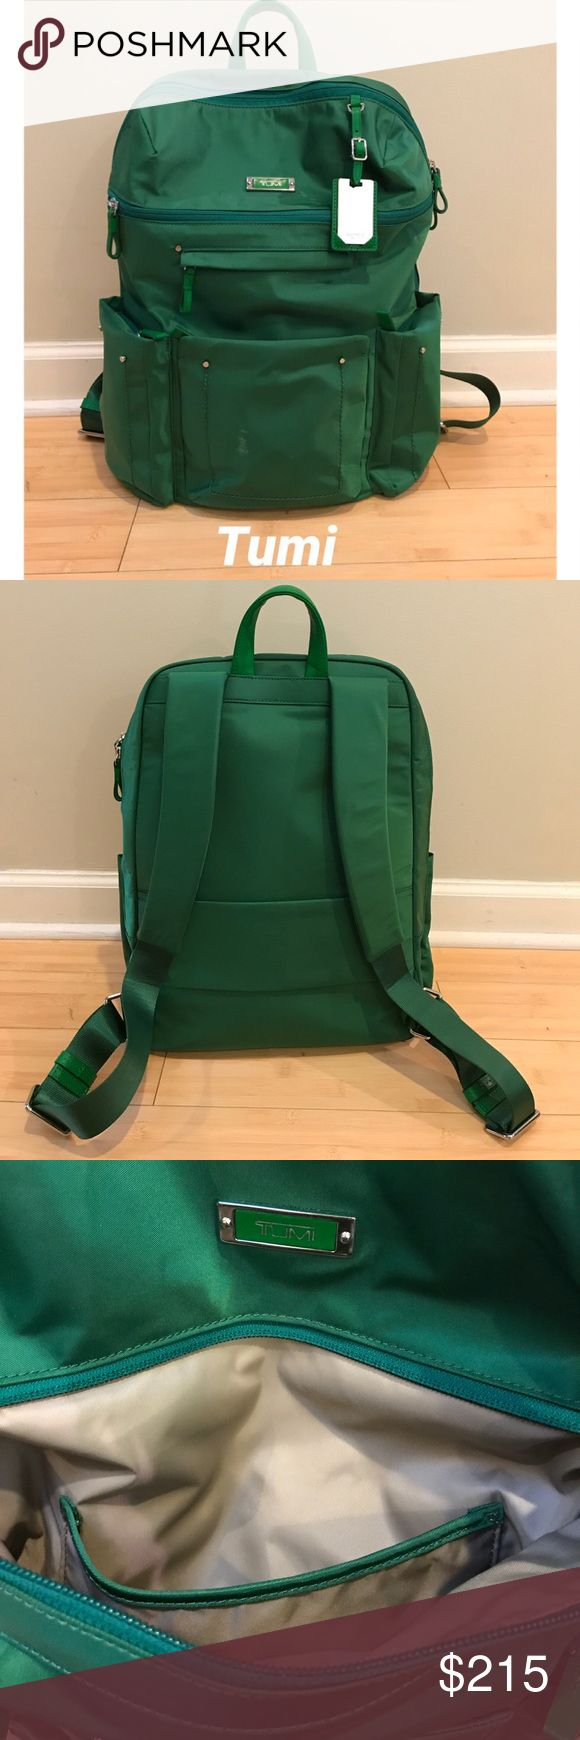 Tumi Calais Backpack Work, travel, and play backpack. Gorgeous emerald green color. Calais (or Voyageur Calais). So many pockets! Great storage. Three on front. Two main compartments with pockets within each. Laptop pocket. Strap on back to slide over luggage handle. Adjustable straps. Leather handle and trim. Mirror tag. Used a couple of times and has a few signs of wear. Some can be seen in 5th and 7th pic. Tumi will last a long time! Great quality. Ask questions! I will respond to all…